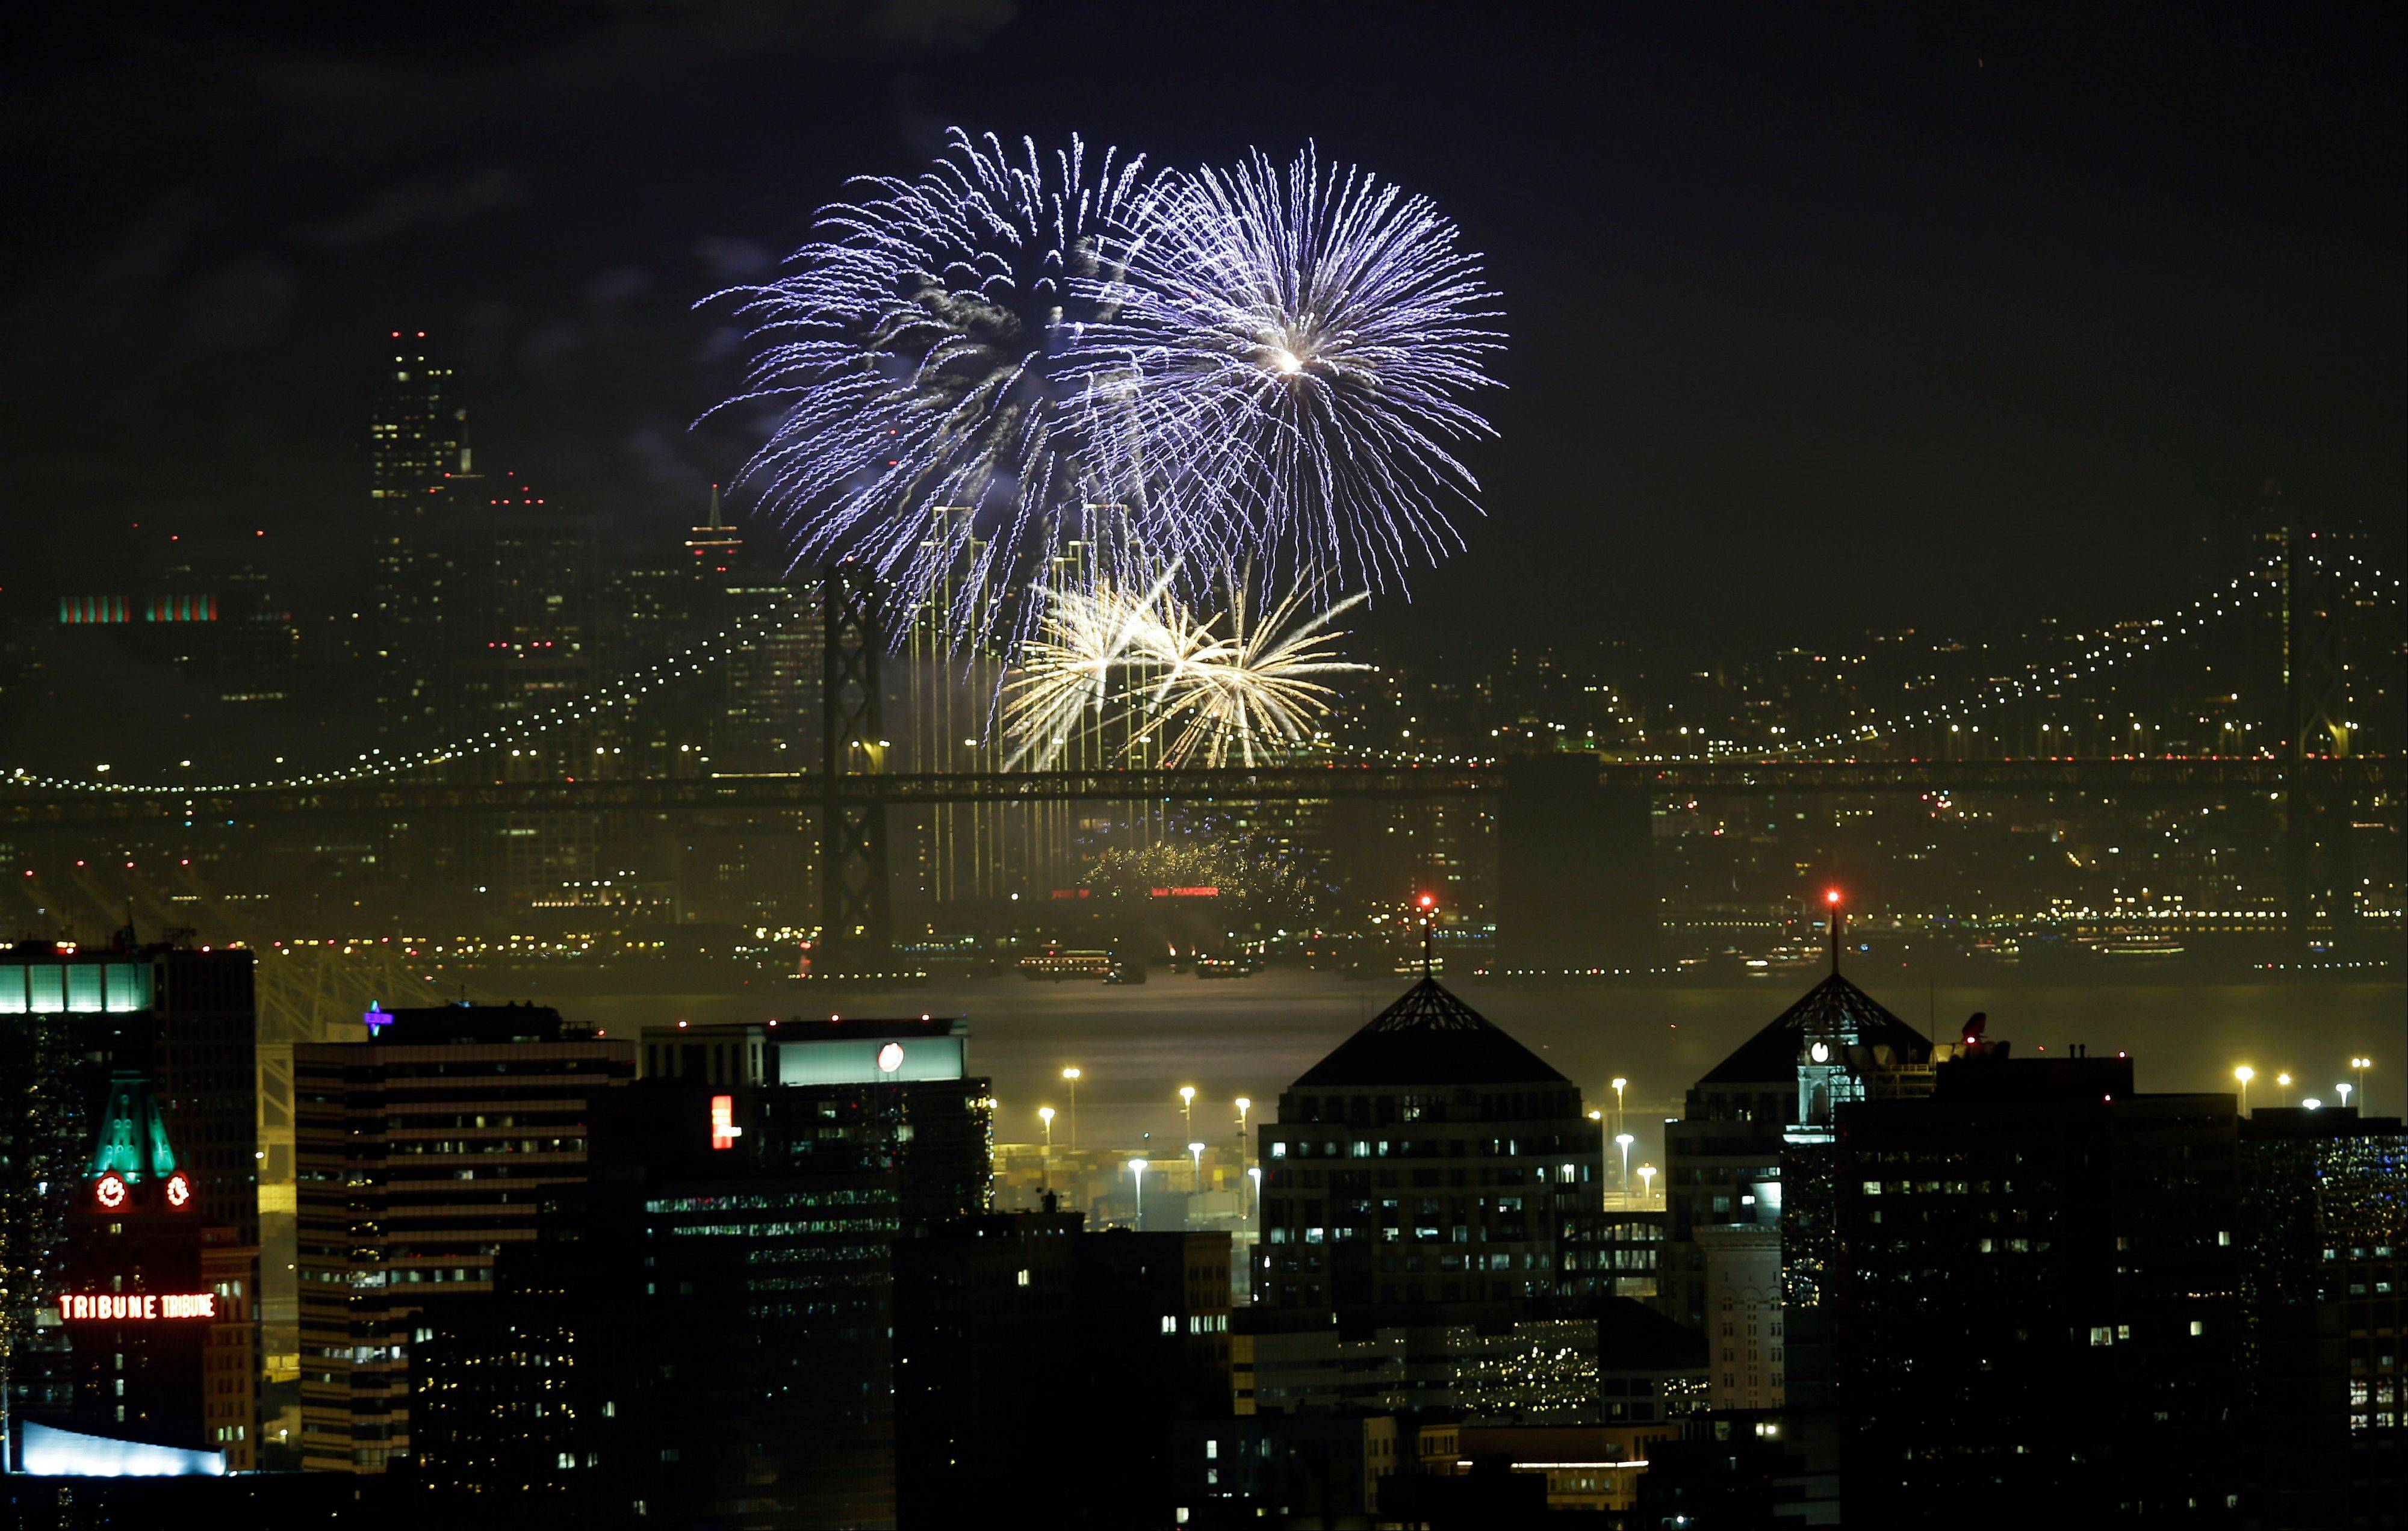 Fireworks fill the air in the bay over the Oakland, bottom, and San Francisco skylines, divided by the San Francisco Oakland Bay Bridge, as part of New Year's Eve celebrations in a view from Oakland, Calif. on Wednesday, Jan. 1, 2014.